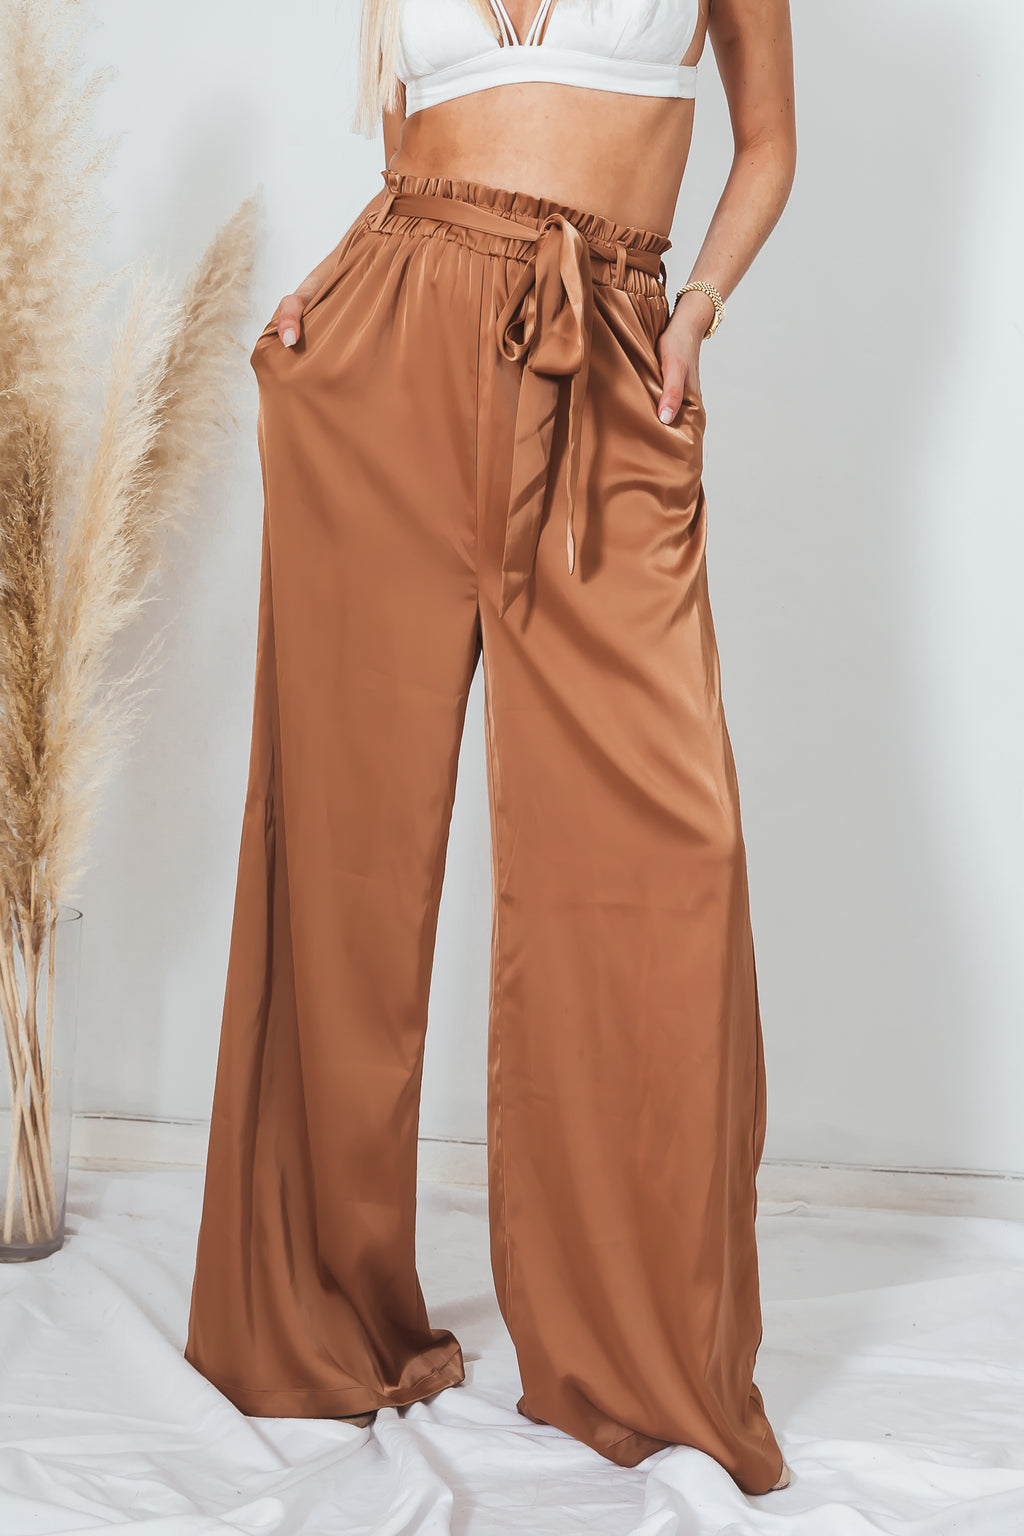 Satin Palazzo Pant with Belt - Bronze